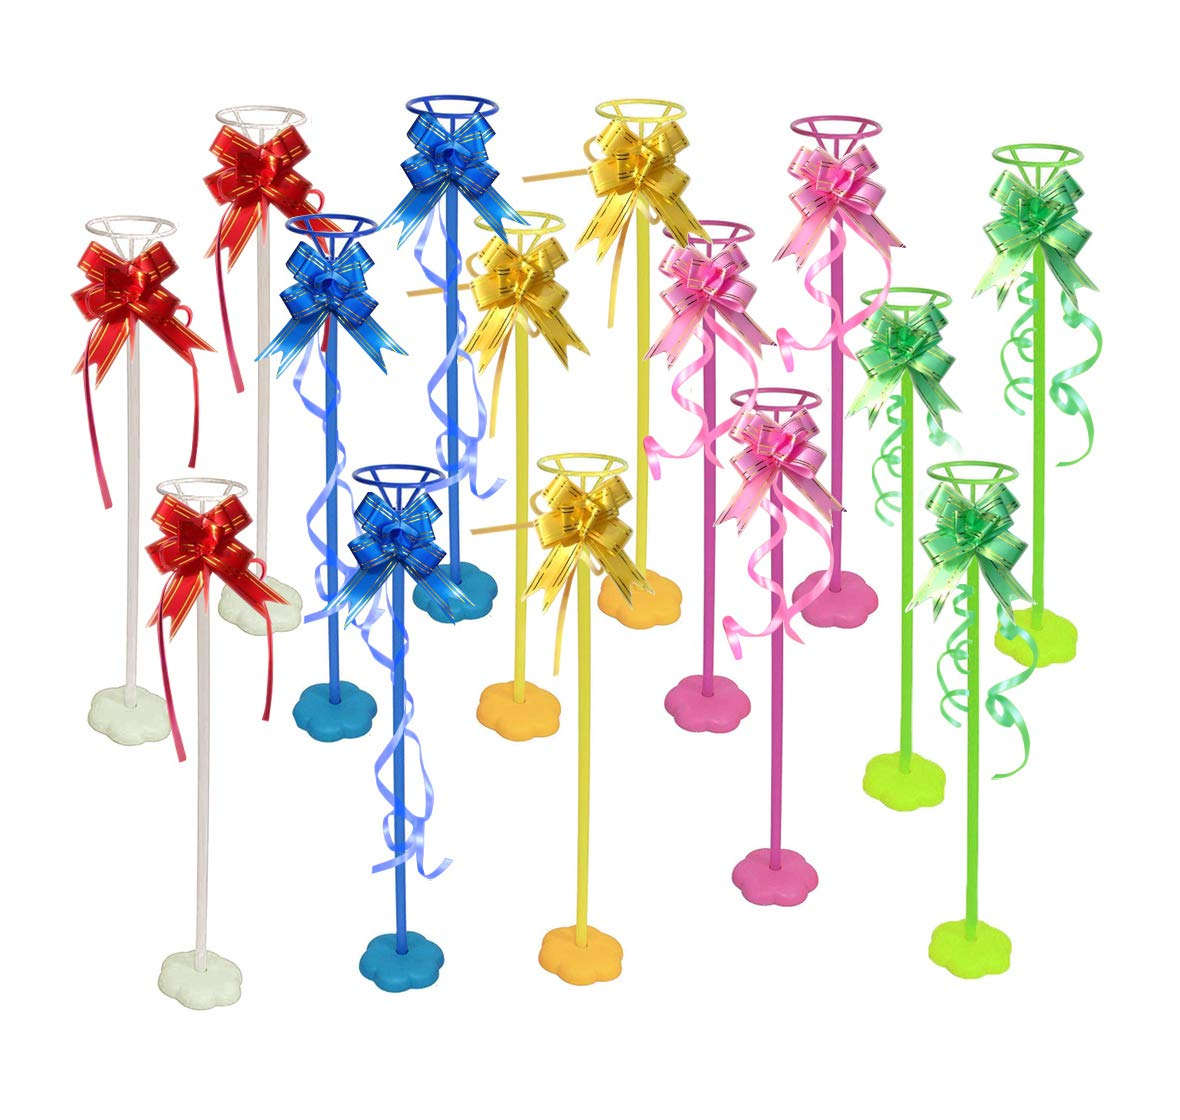 YAWOOYA Balloon Stand Sticks Kit- 15 Sets Tabletop Balloon Stick Stand Base Holder Kits with Poles Cups and Colorful Silk Ribbon Bowknots by YAWOOYA